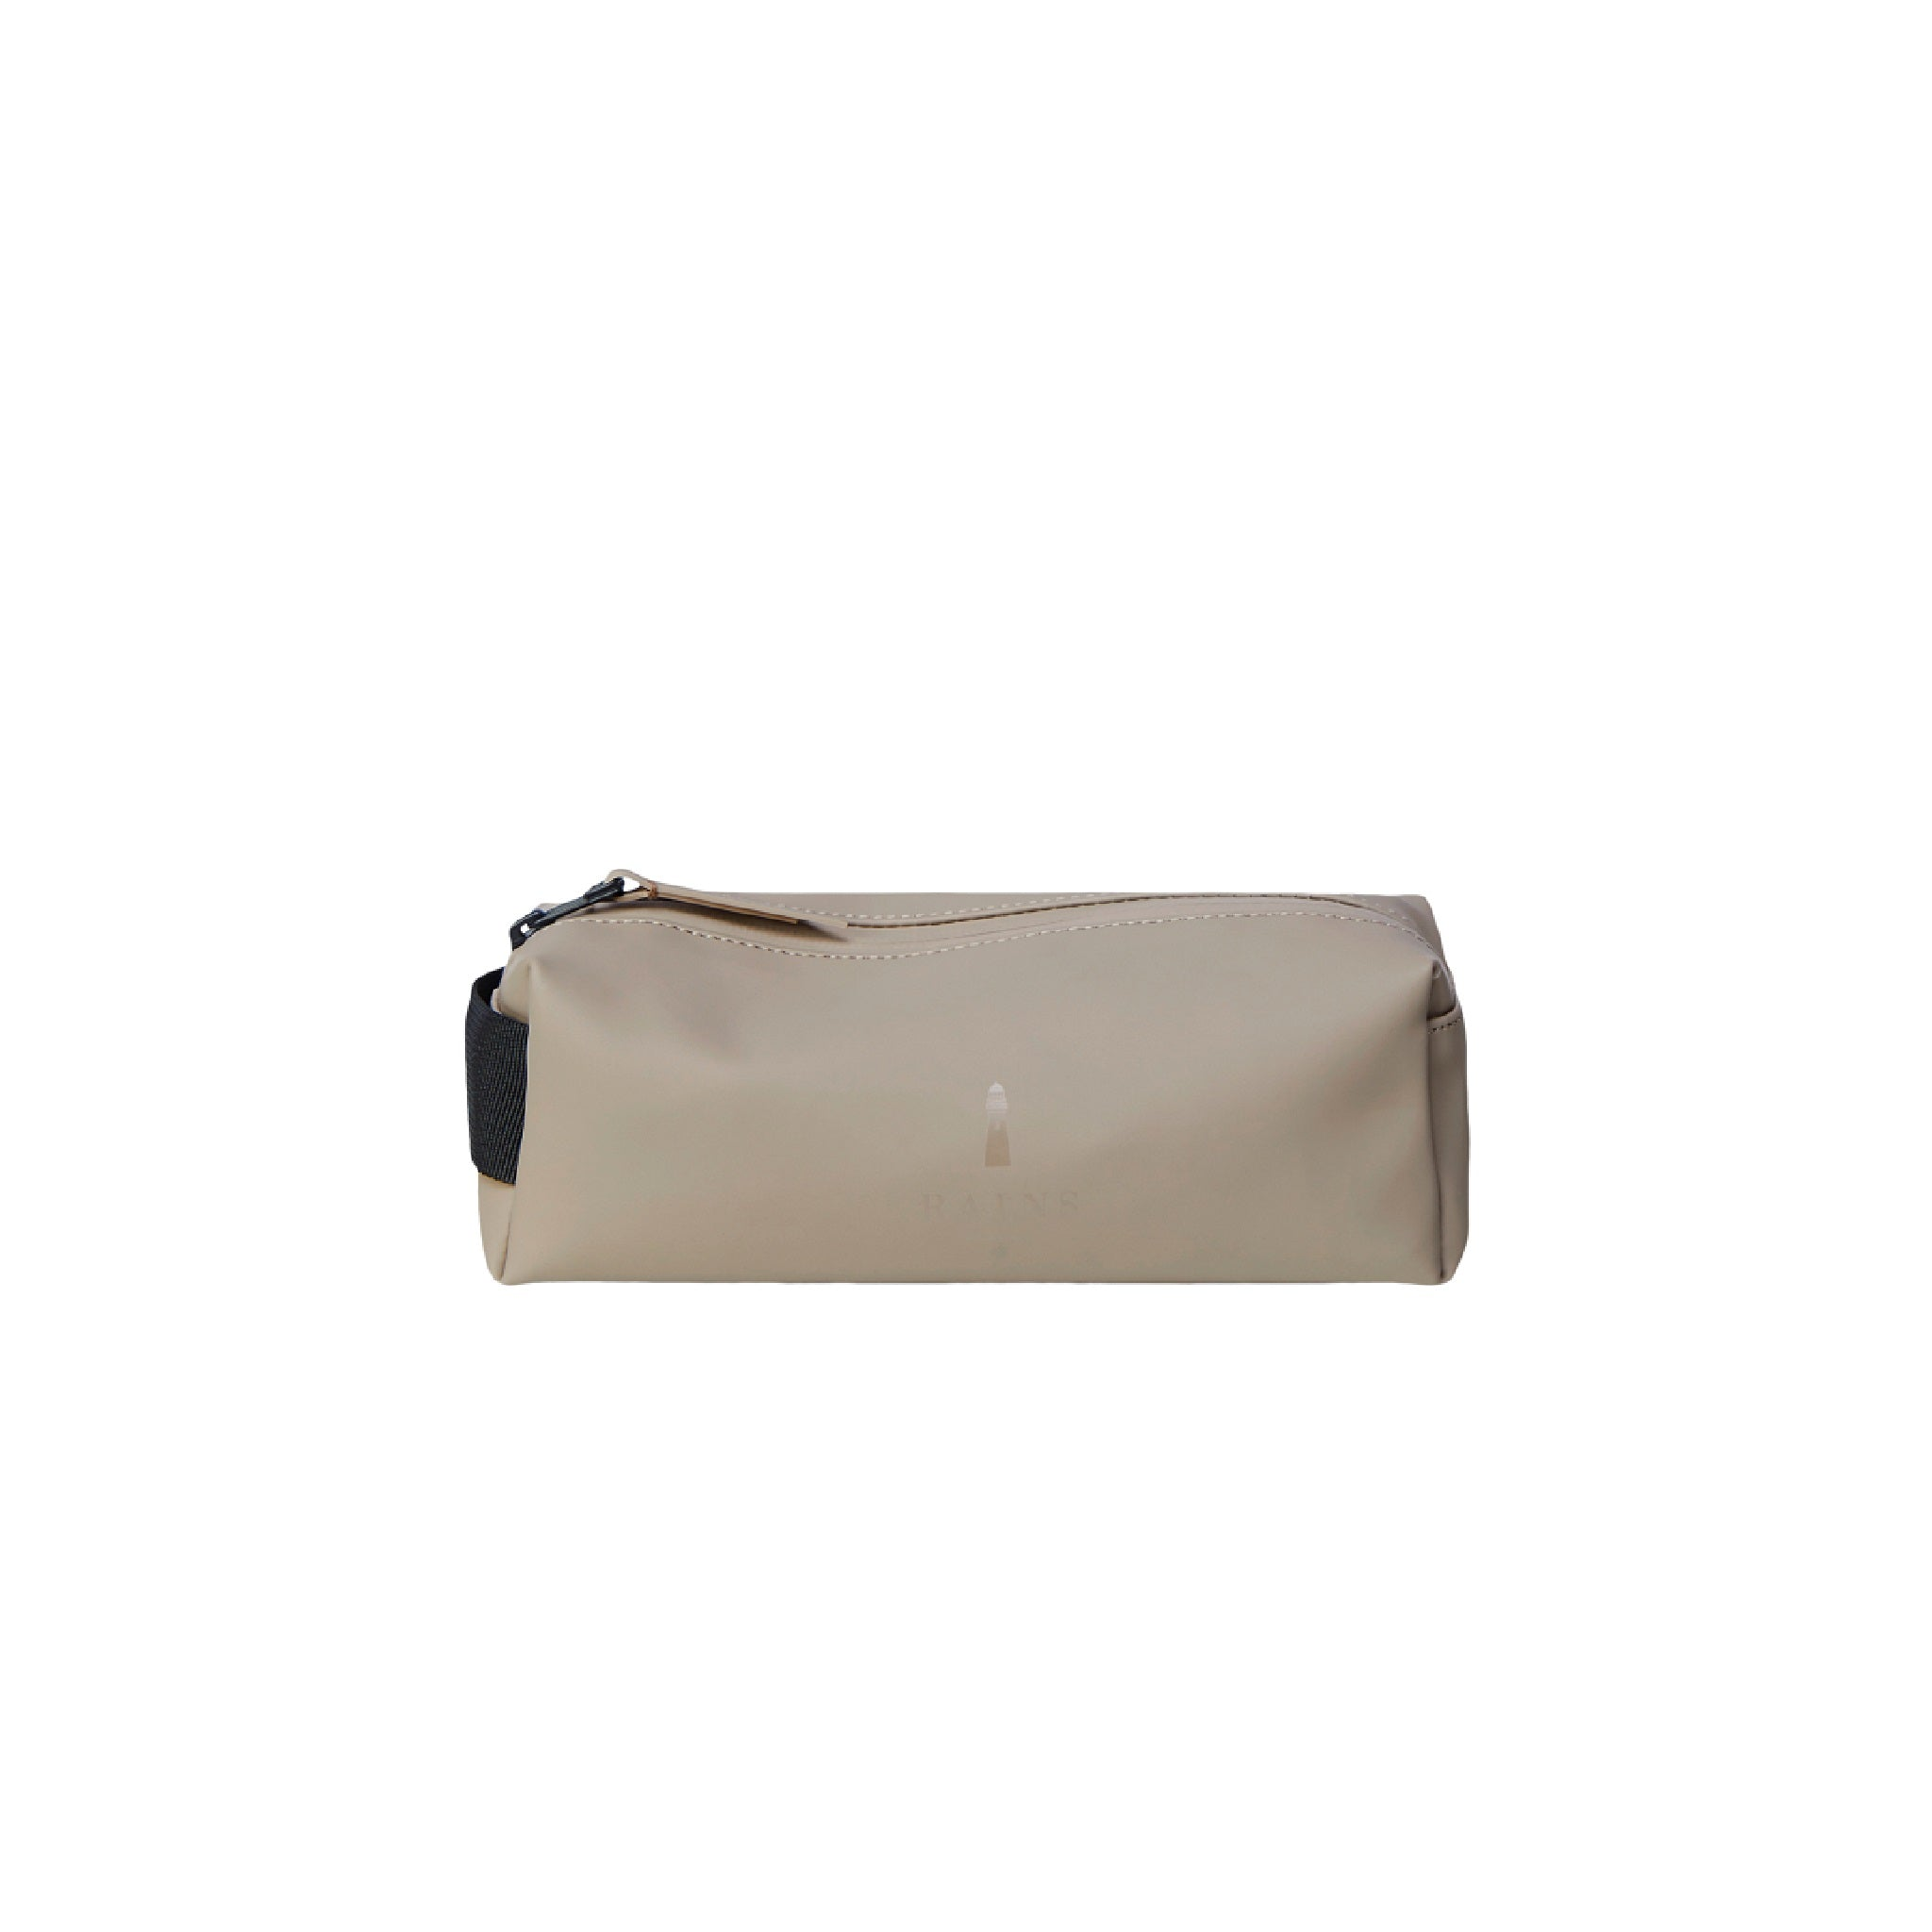 Pencil case taupe